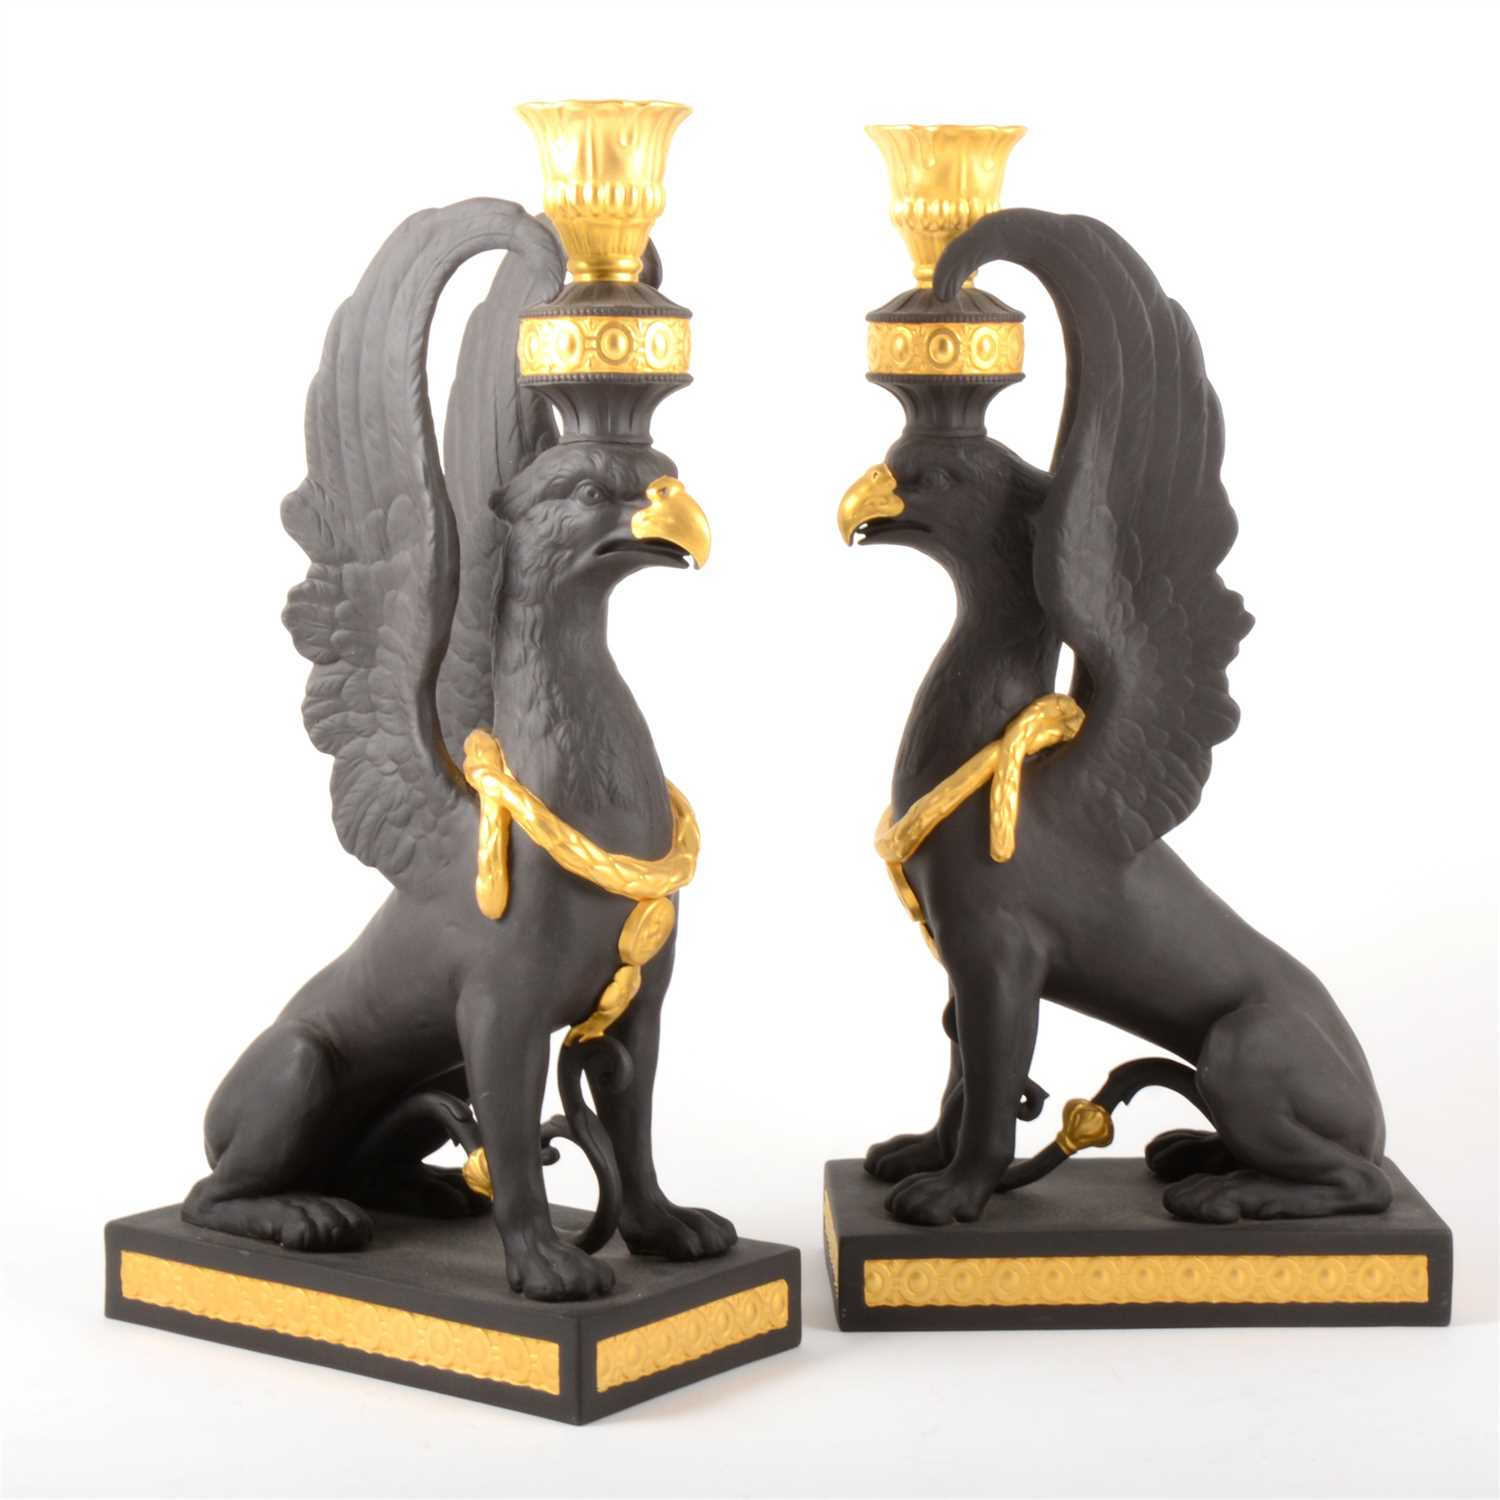 Lot 33-A pair of limited edition Masterpiece Collection 'Griffin Candlesticks', by Wedgwood.